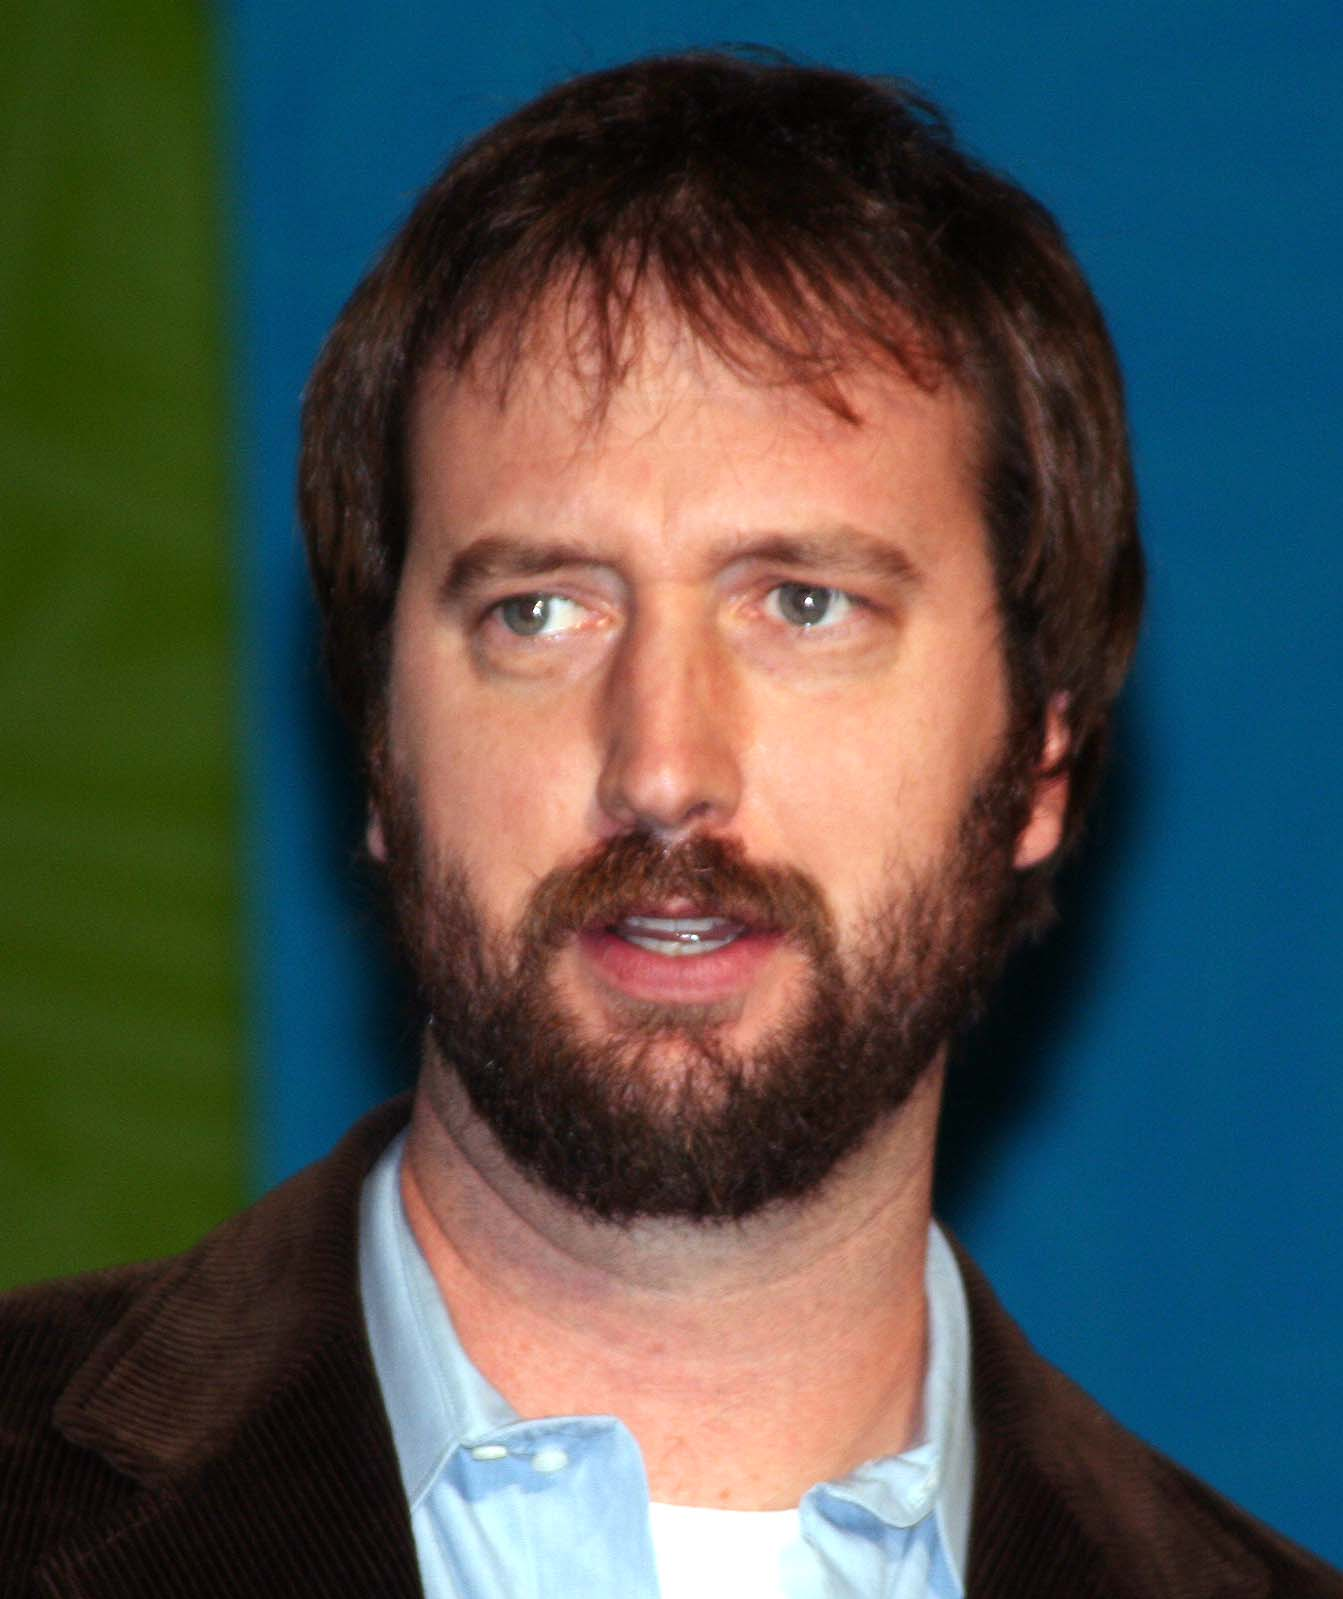 The 47-year old son of father Richard Green and mother Mary Jane Green Tom Green in 2018 photo. Tom Green earned a  million dollar salary - leaving the net worth at 5 million in 2018